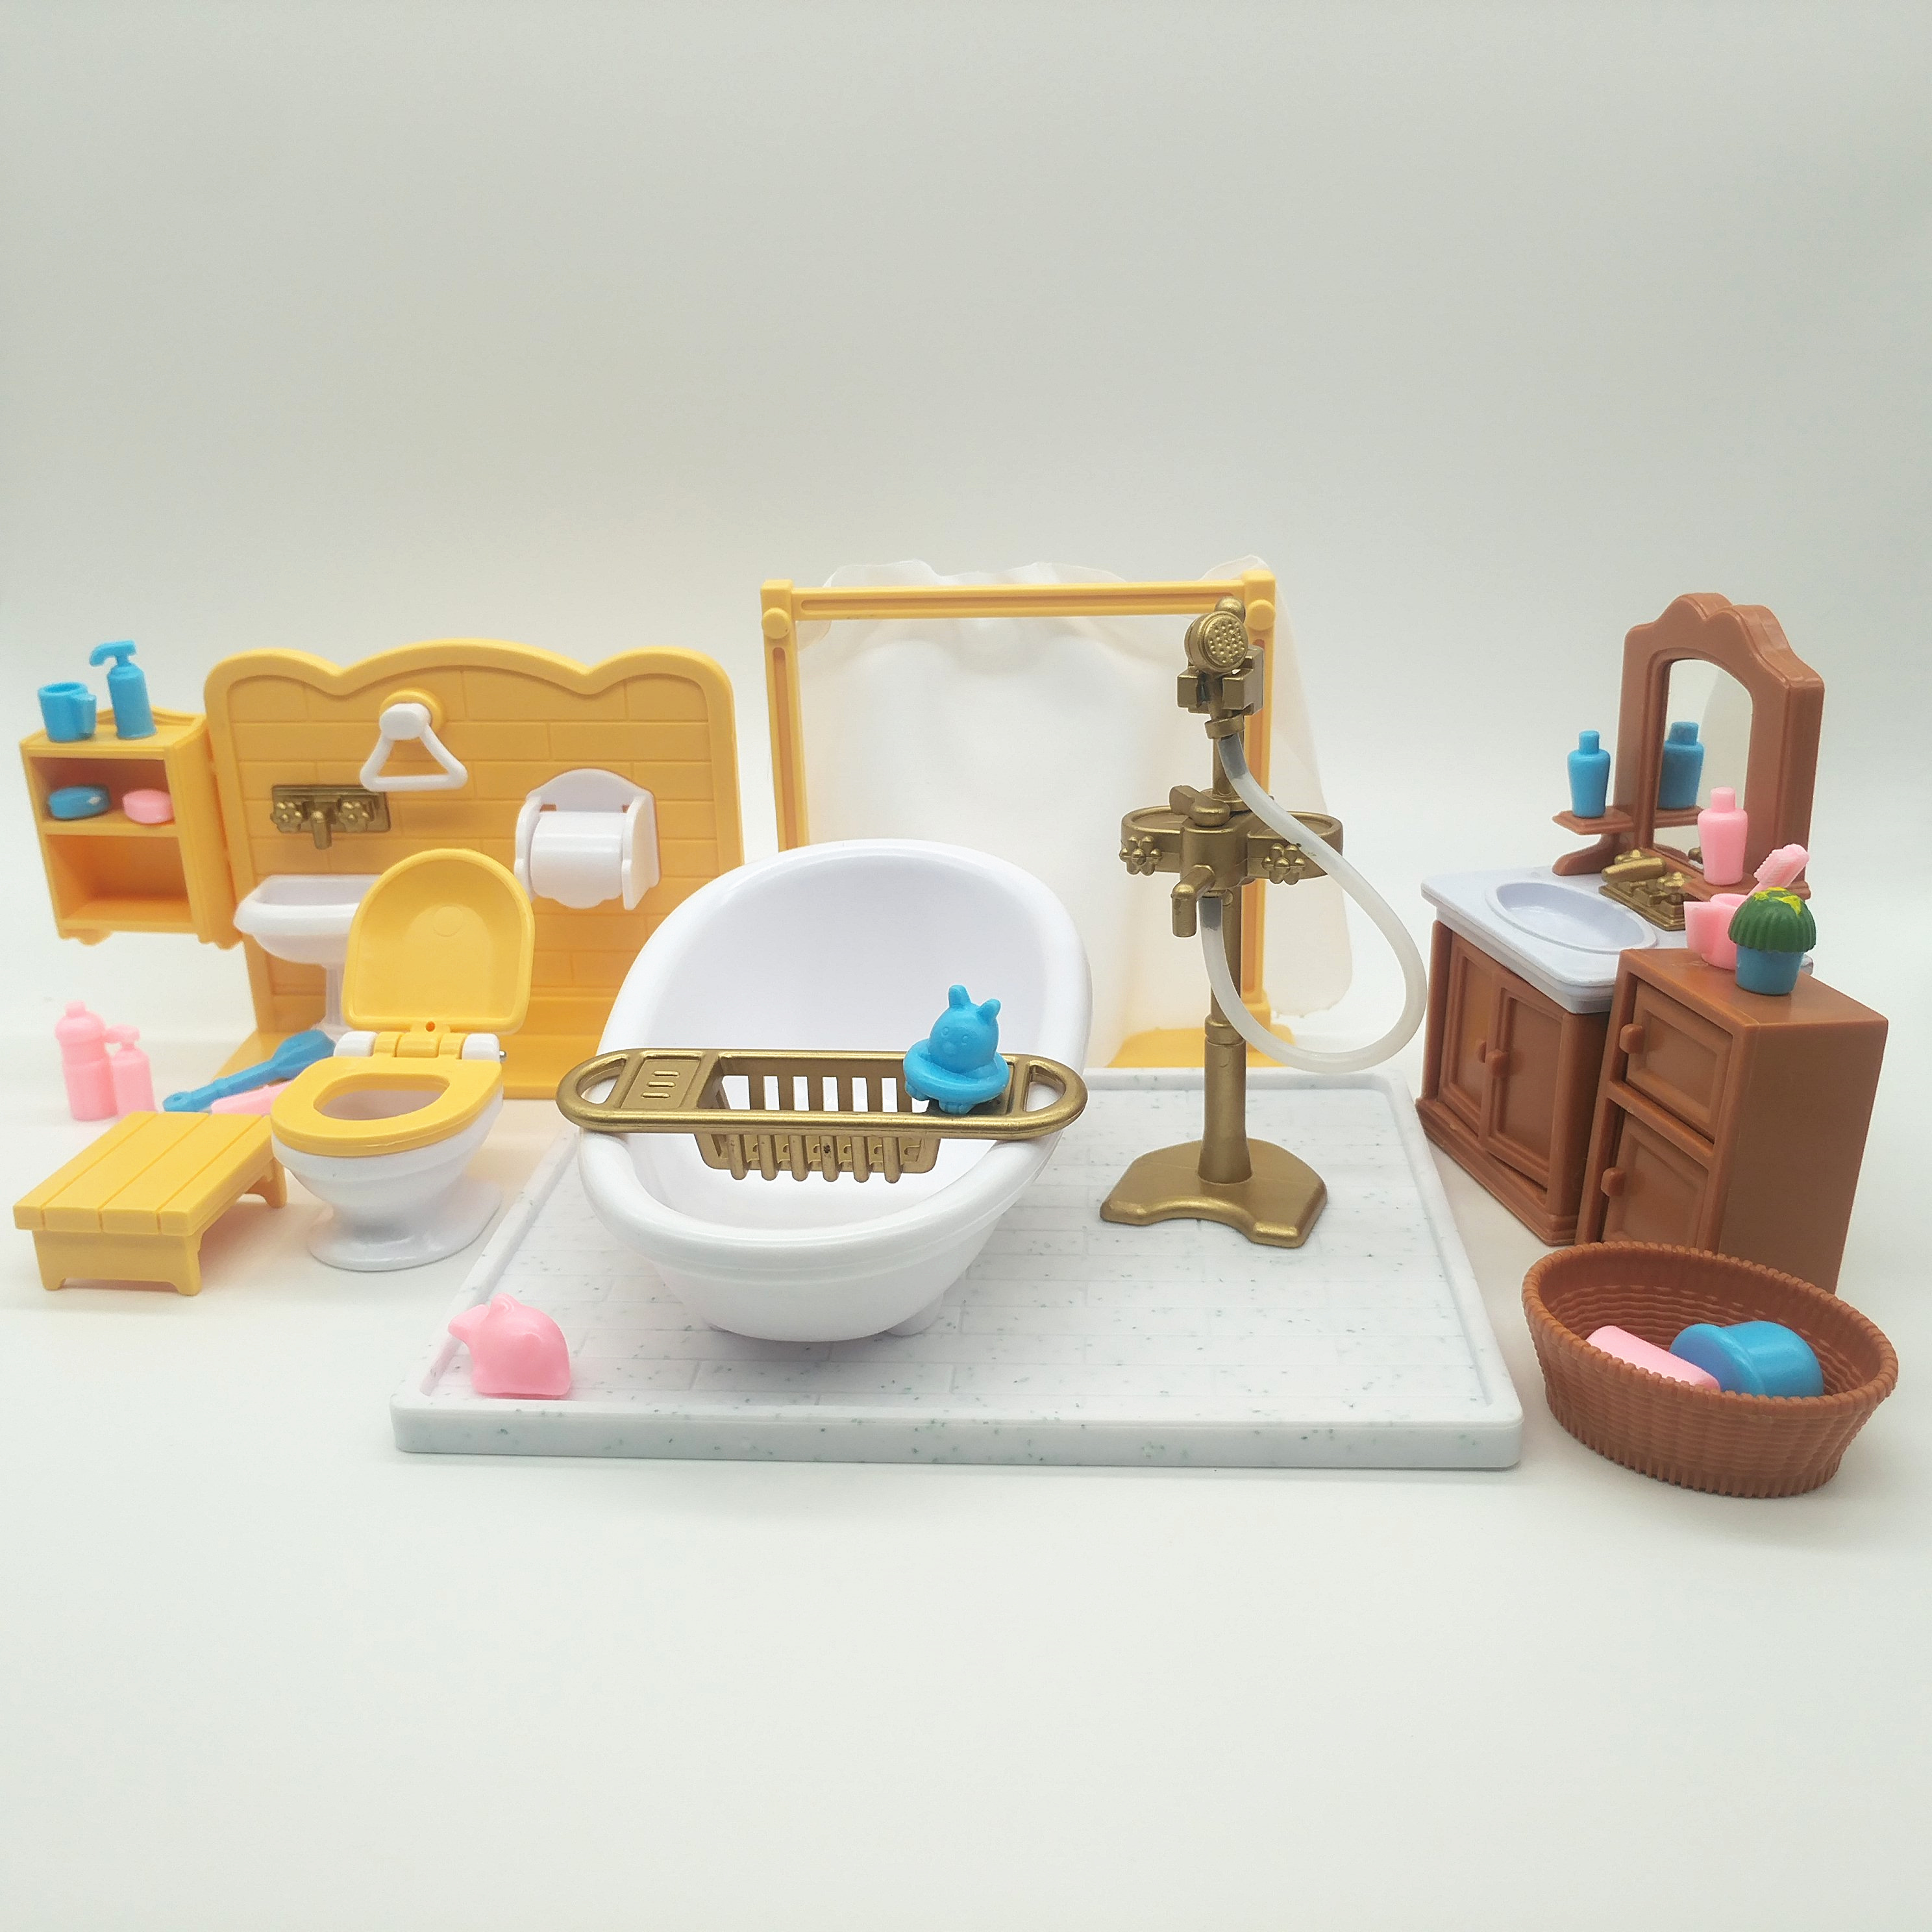 Happy Family Bath Room Furniture Figures Dolls Toy Mini Furniture Miniature Dollhouse Pretend Child's Children Toy Gift